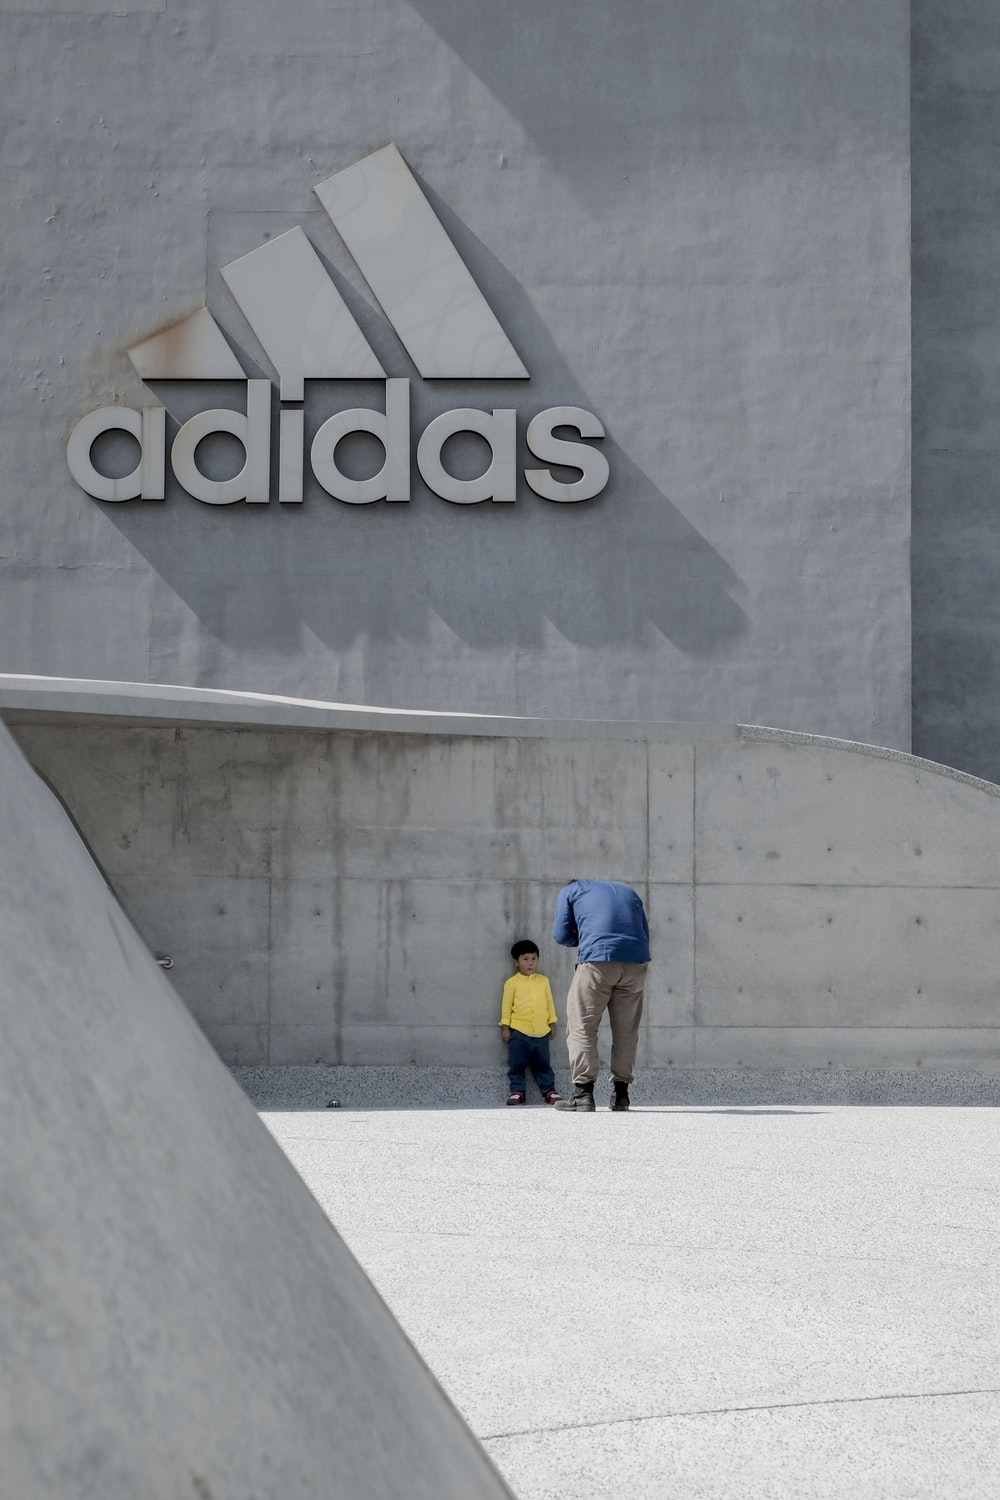 man standing in front of boy leaning on adidas building wall